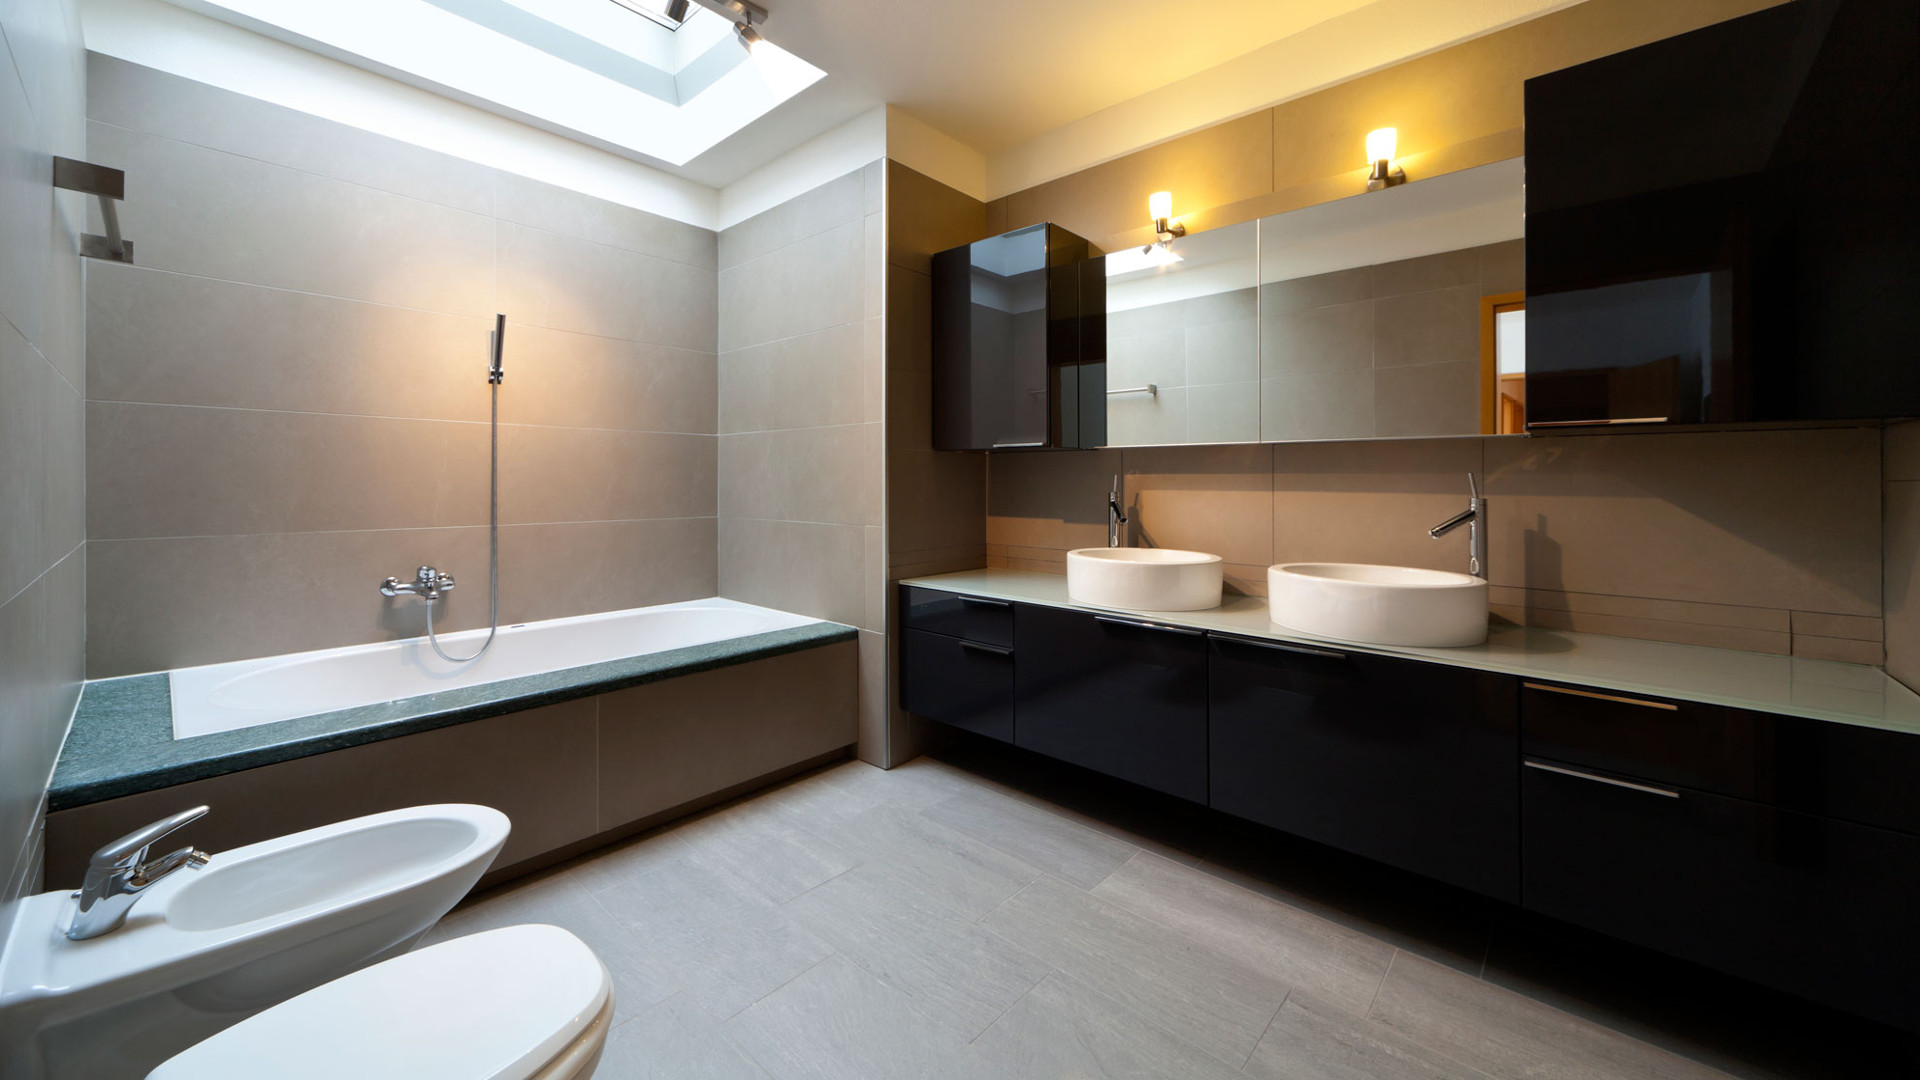 Bathroom Remodel Knoxville knoxville, lenoir city and morristown bathroom remodeling